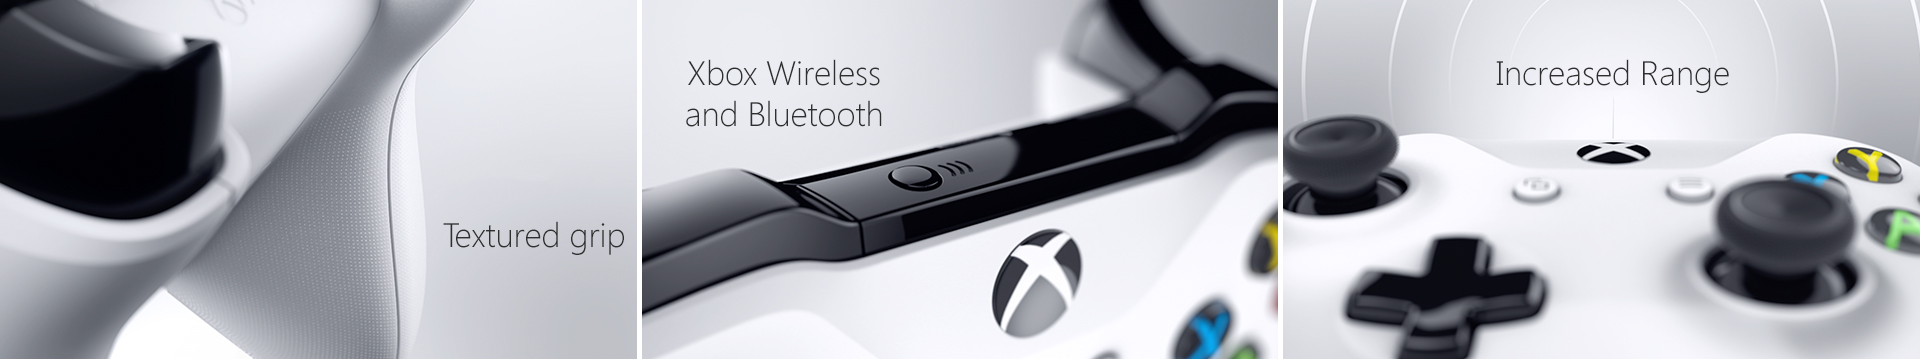 xbox-one-s-microsoft-infobrothers-04